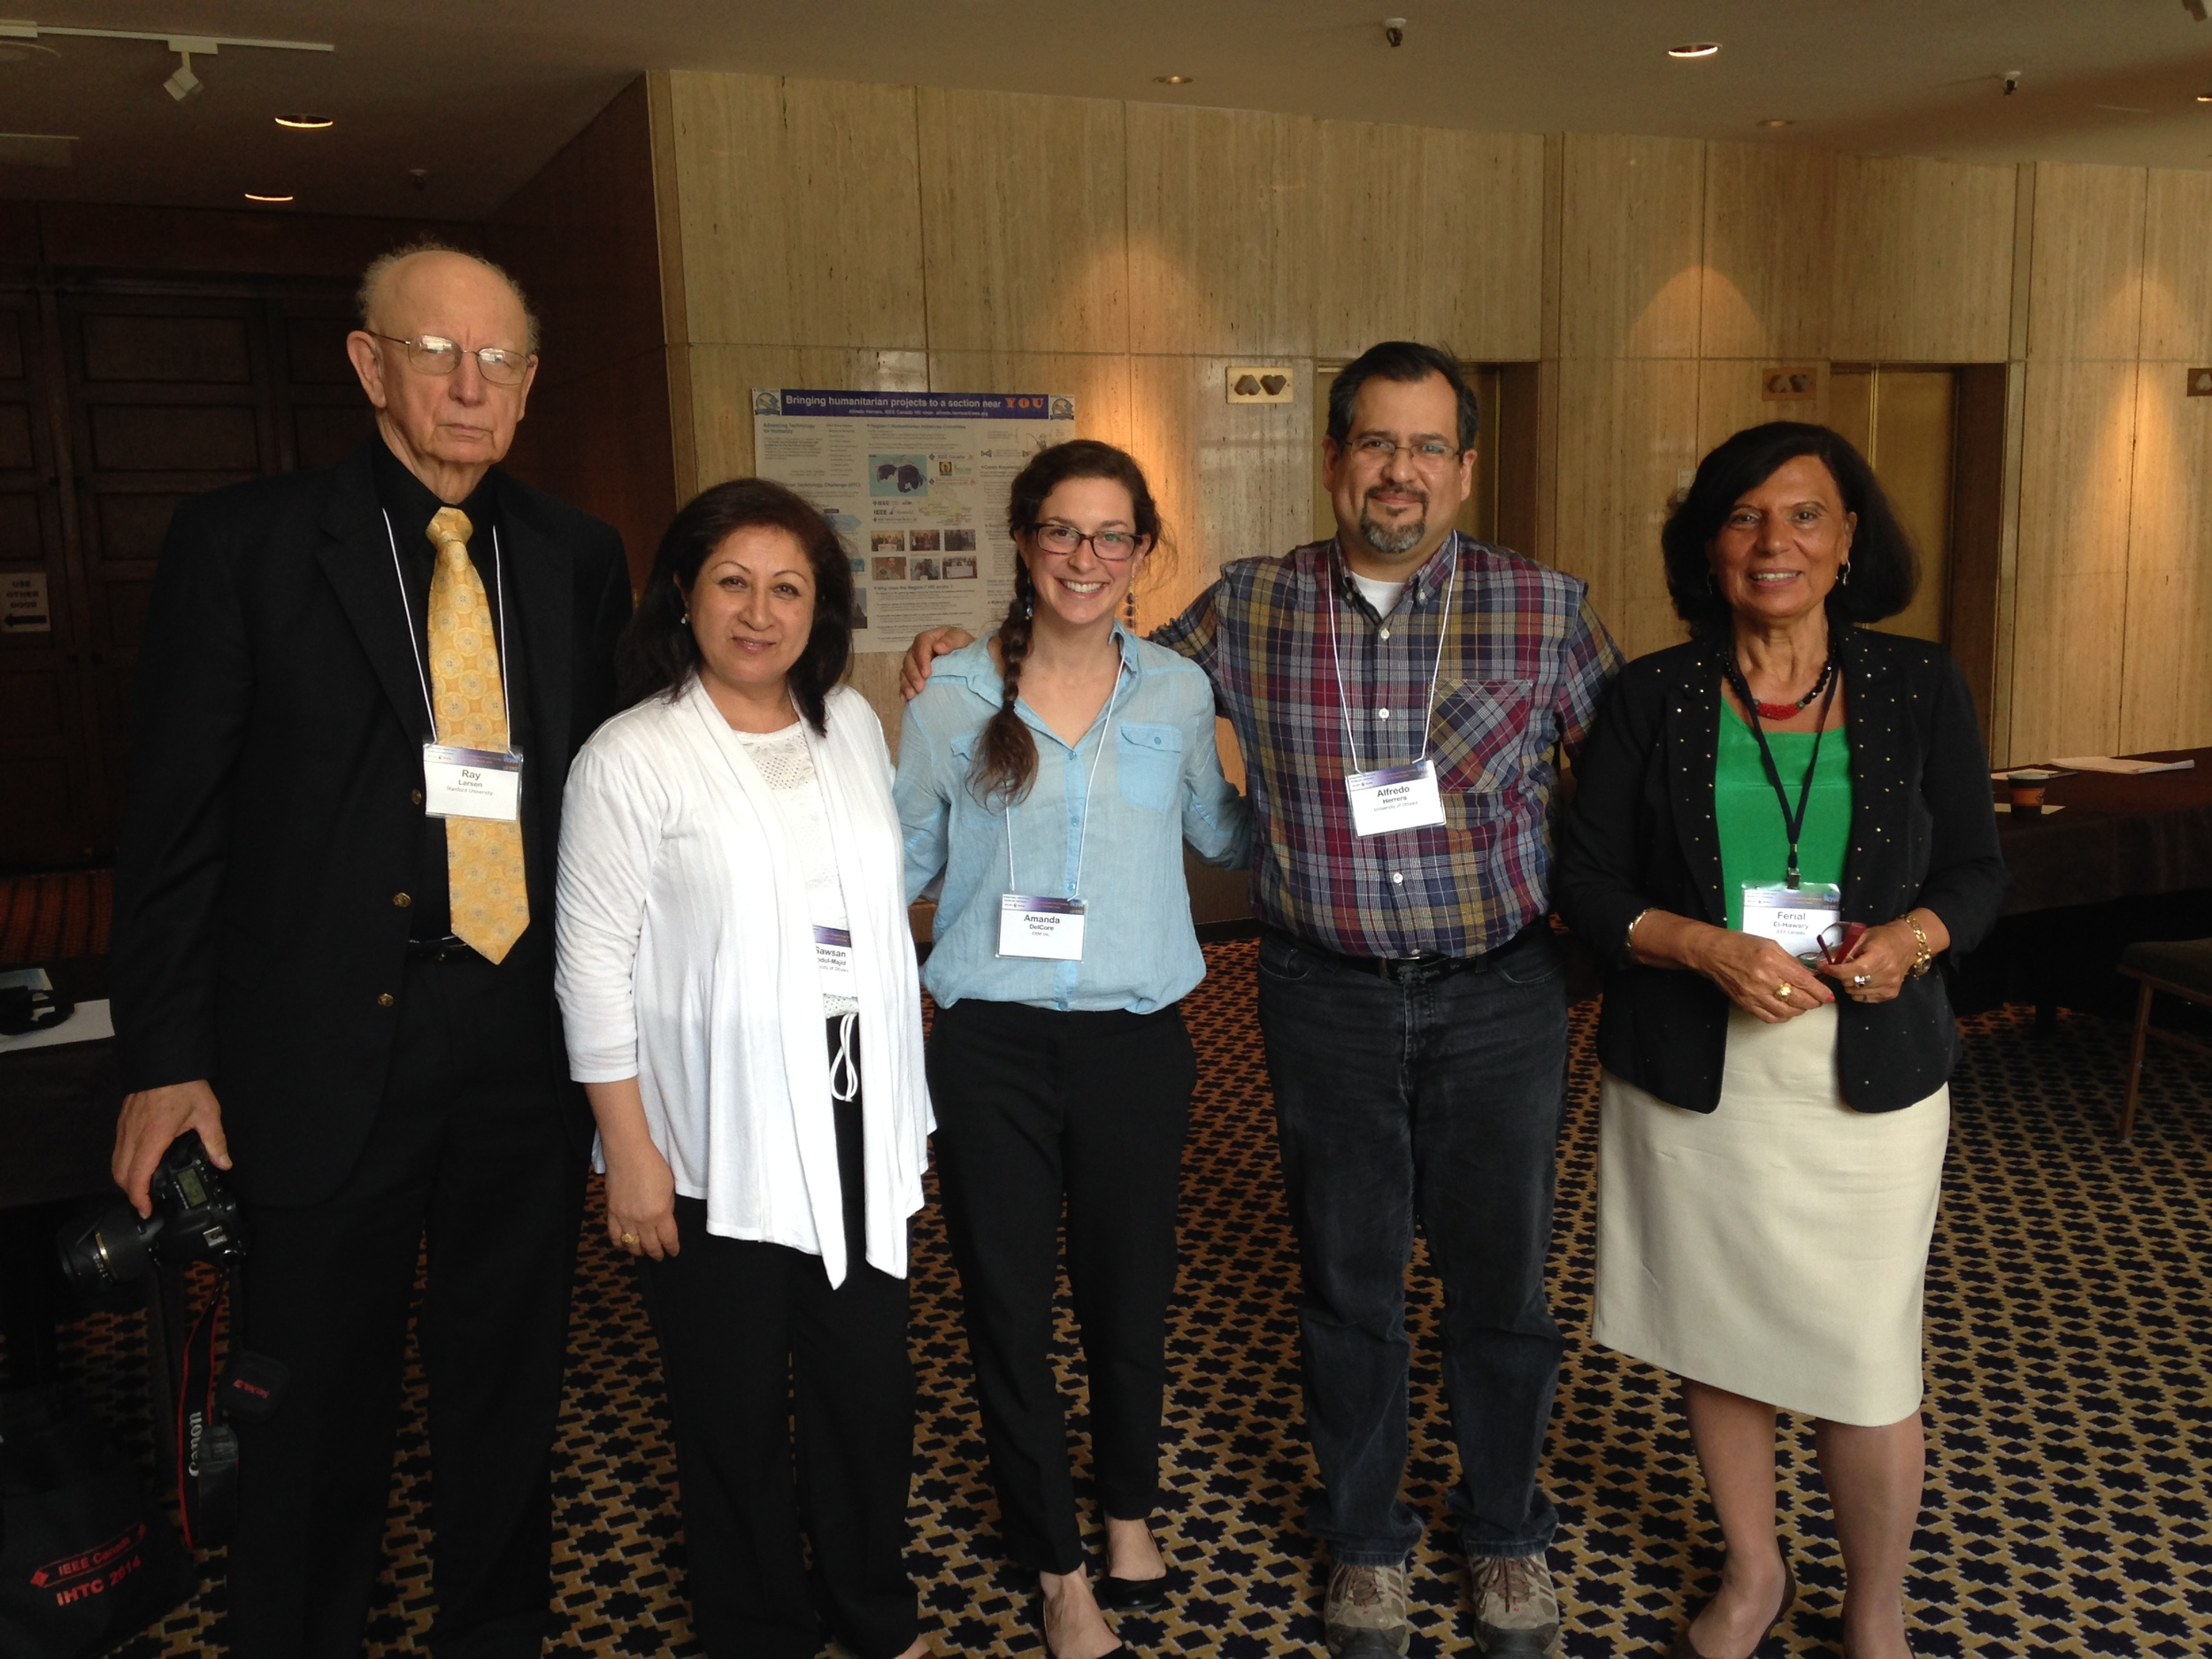 IEEE Humanitarian Technology Conference 2014, Montreal, Canada